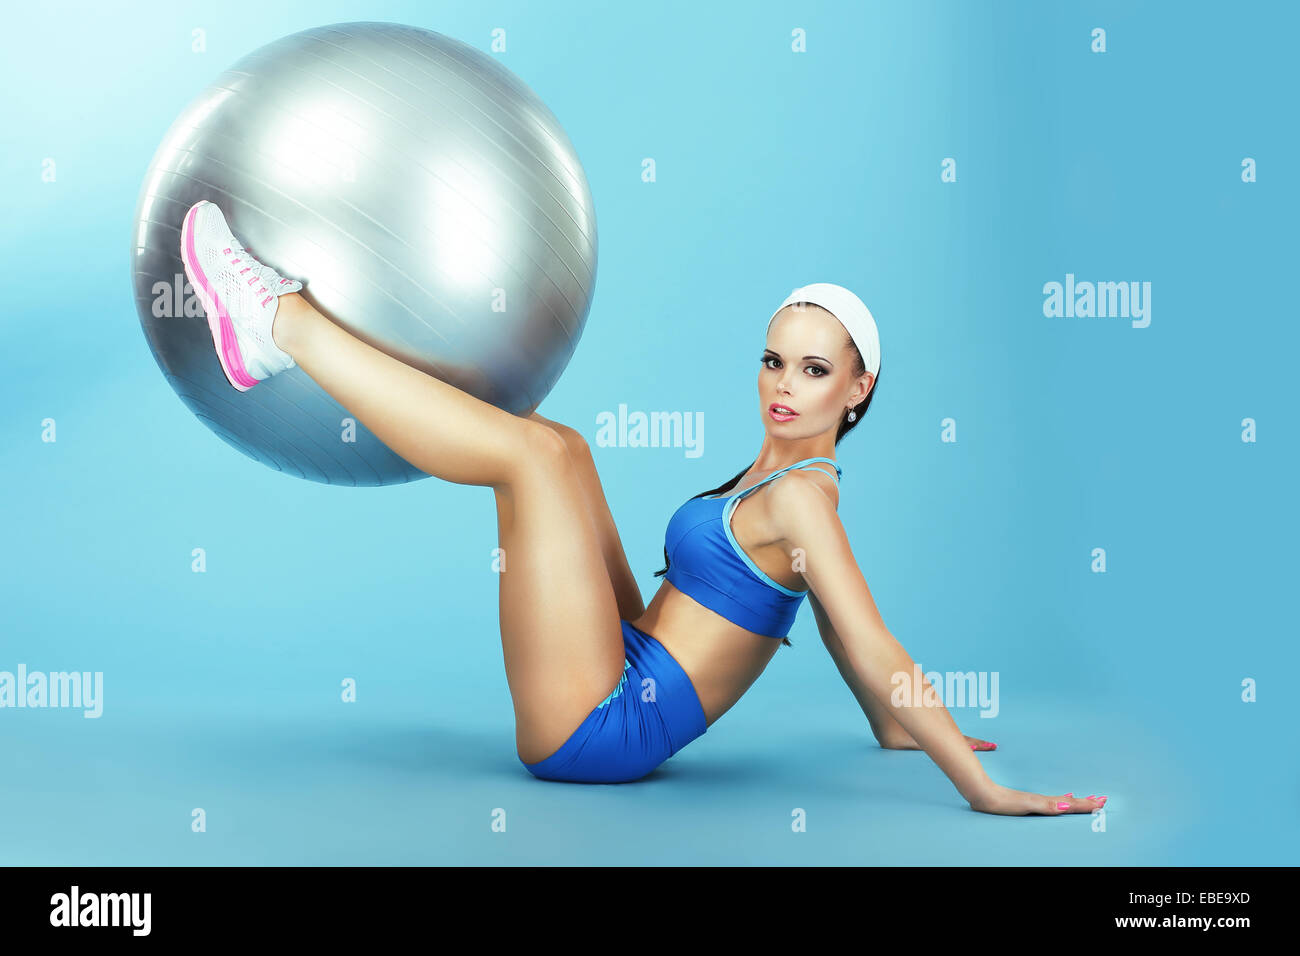 La formation. L'athlétisme. Woman in Sportswear avec Fitness Ball Photo Stock